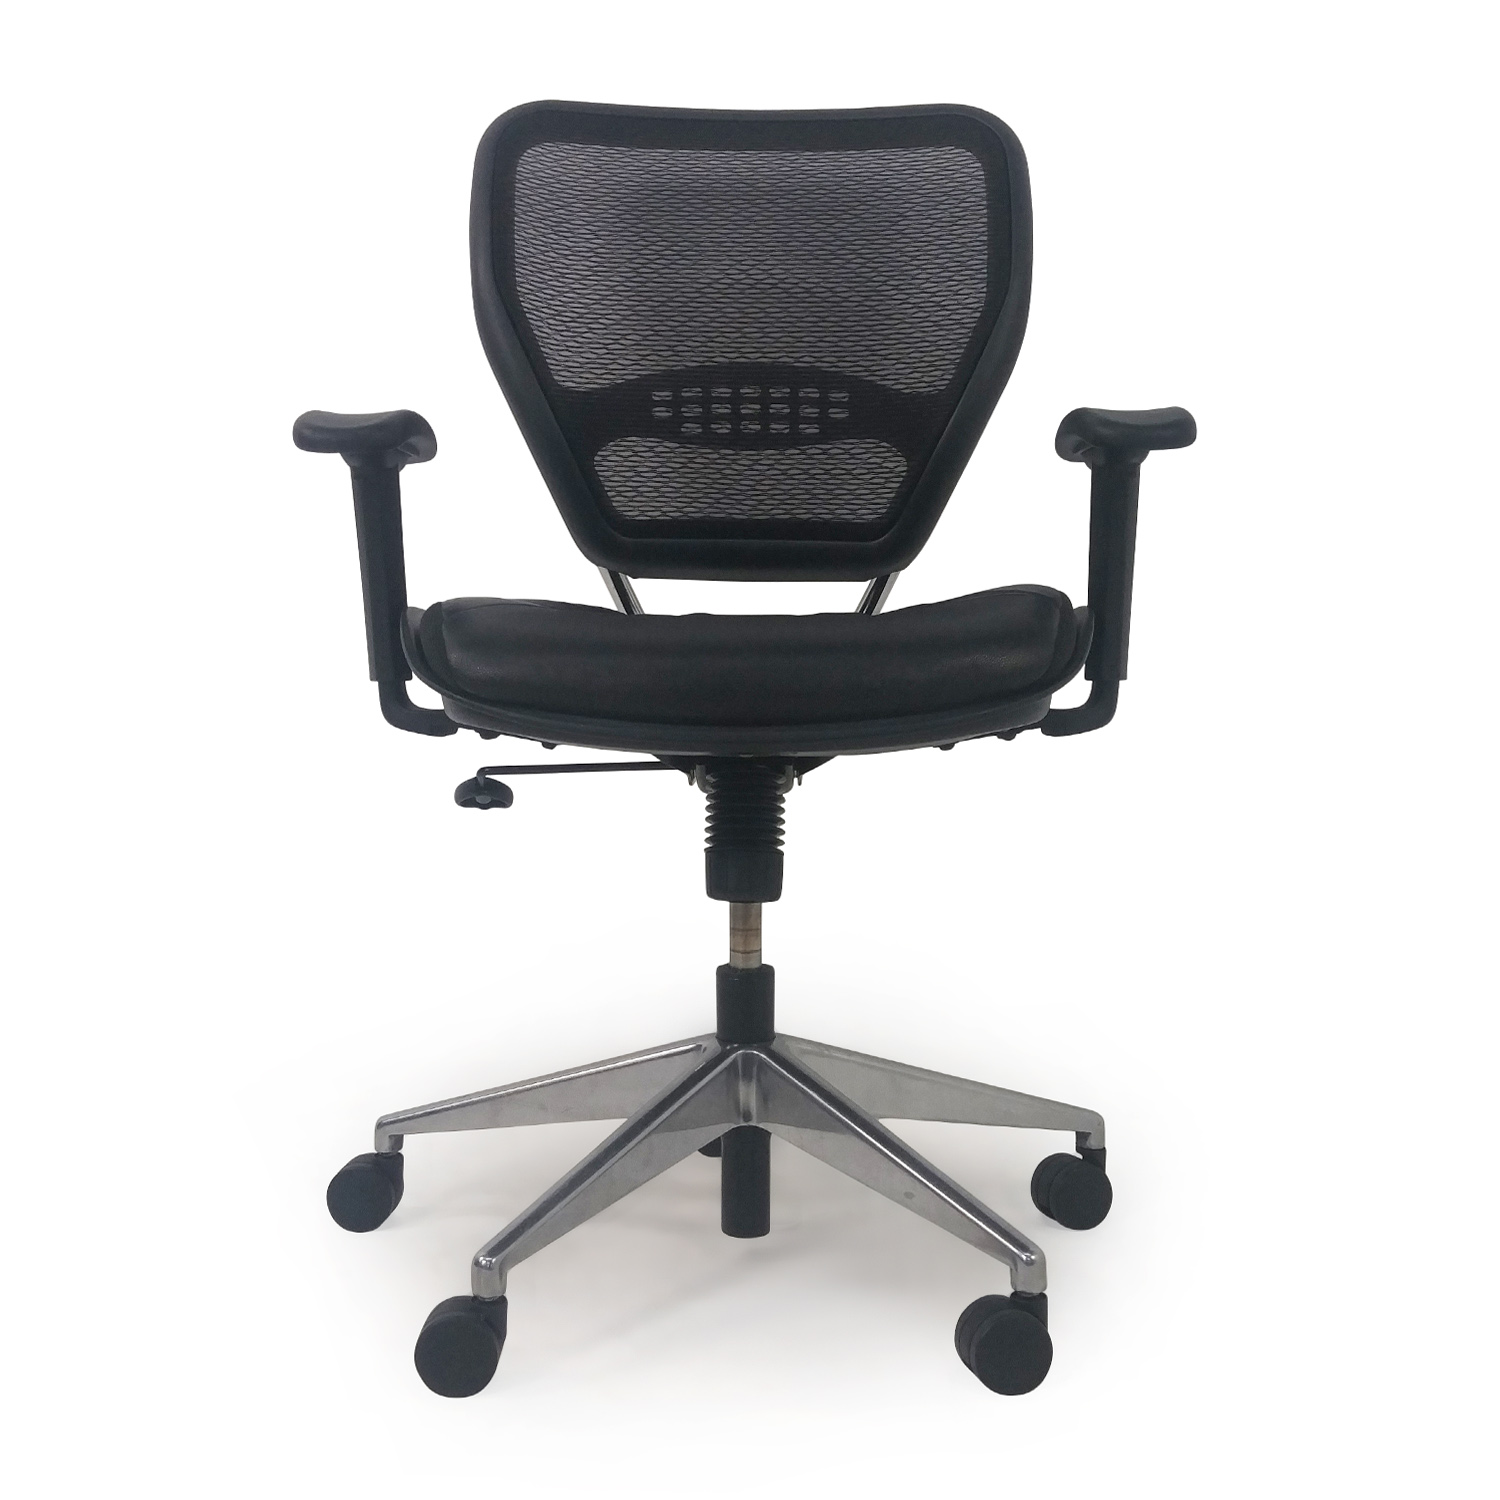 used computer chairs sears craftsman folding chair 89 off leather mesh